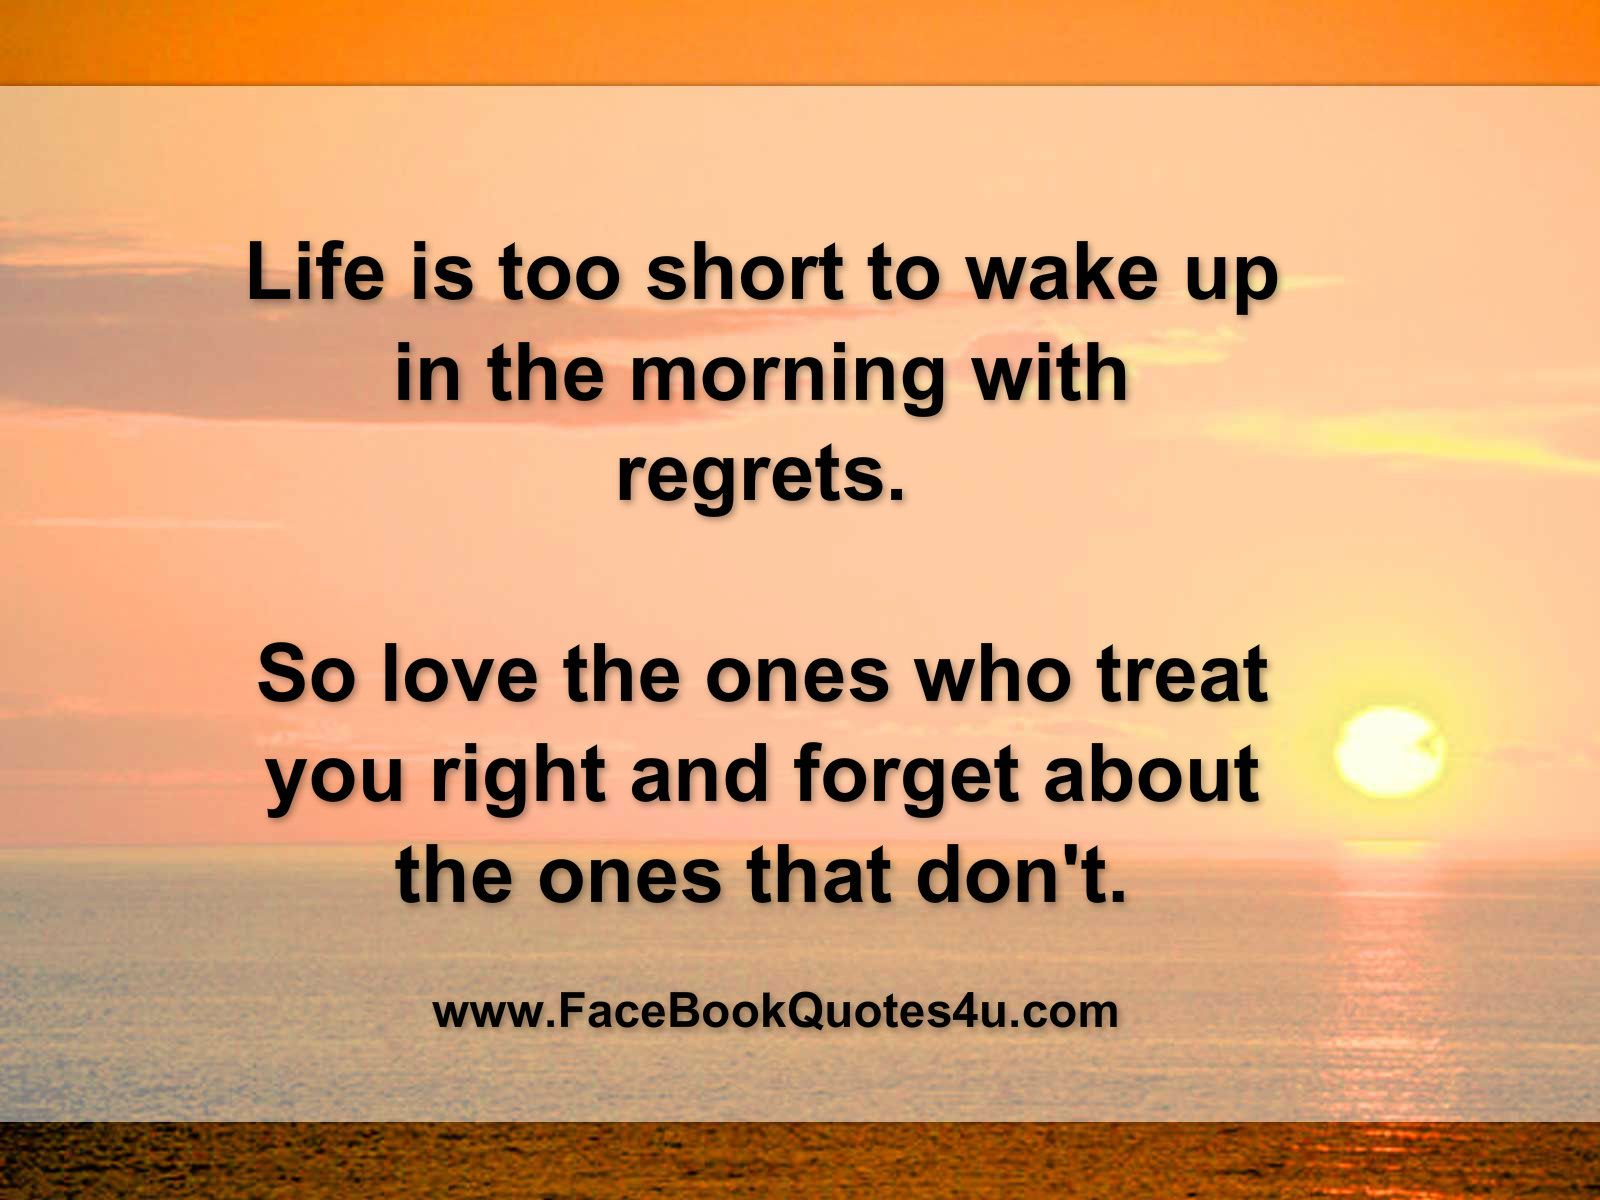 Facebook Quotes Life Is Too Short Good Morning Quotes Best Short Quotes Morning Quotes Images